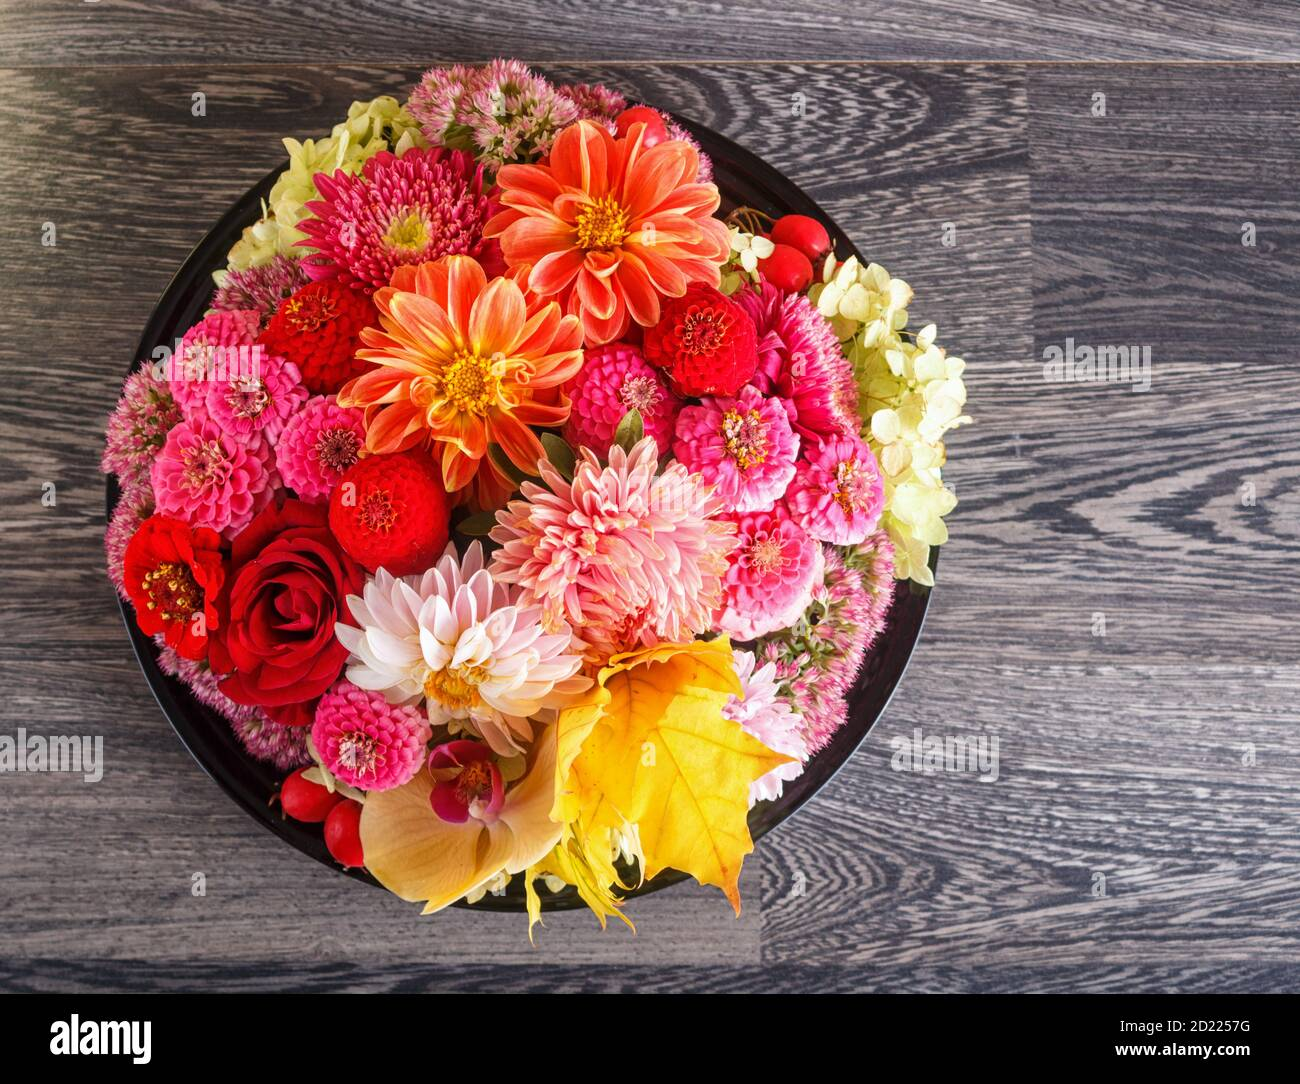 Autumn Flower Arrangement High Resolution Stock Photography And Images Alamy